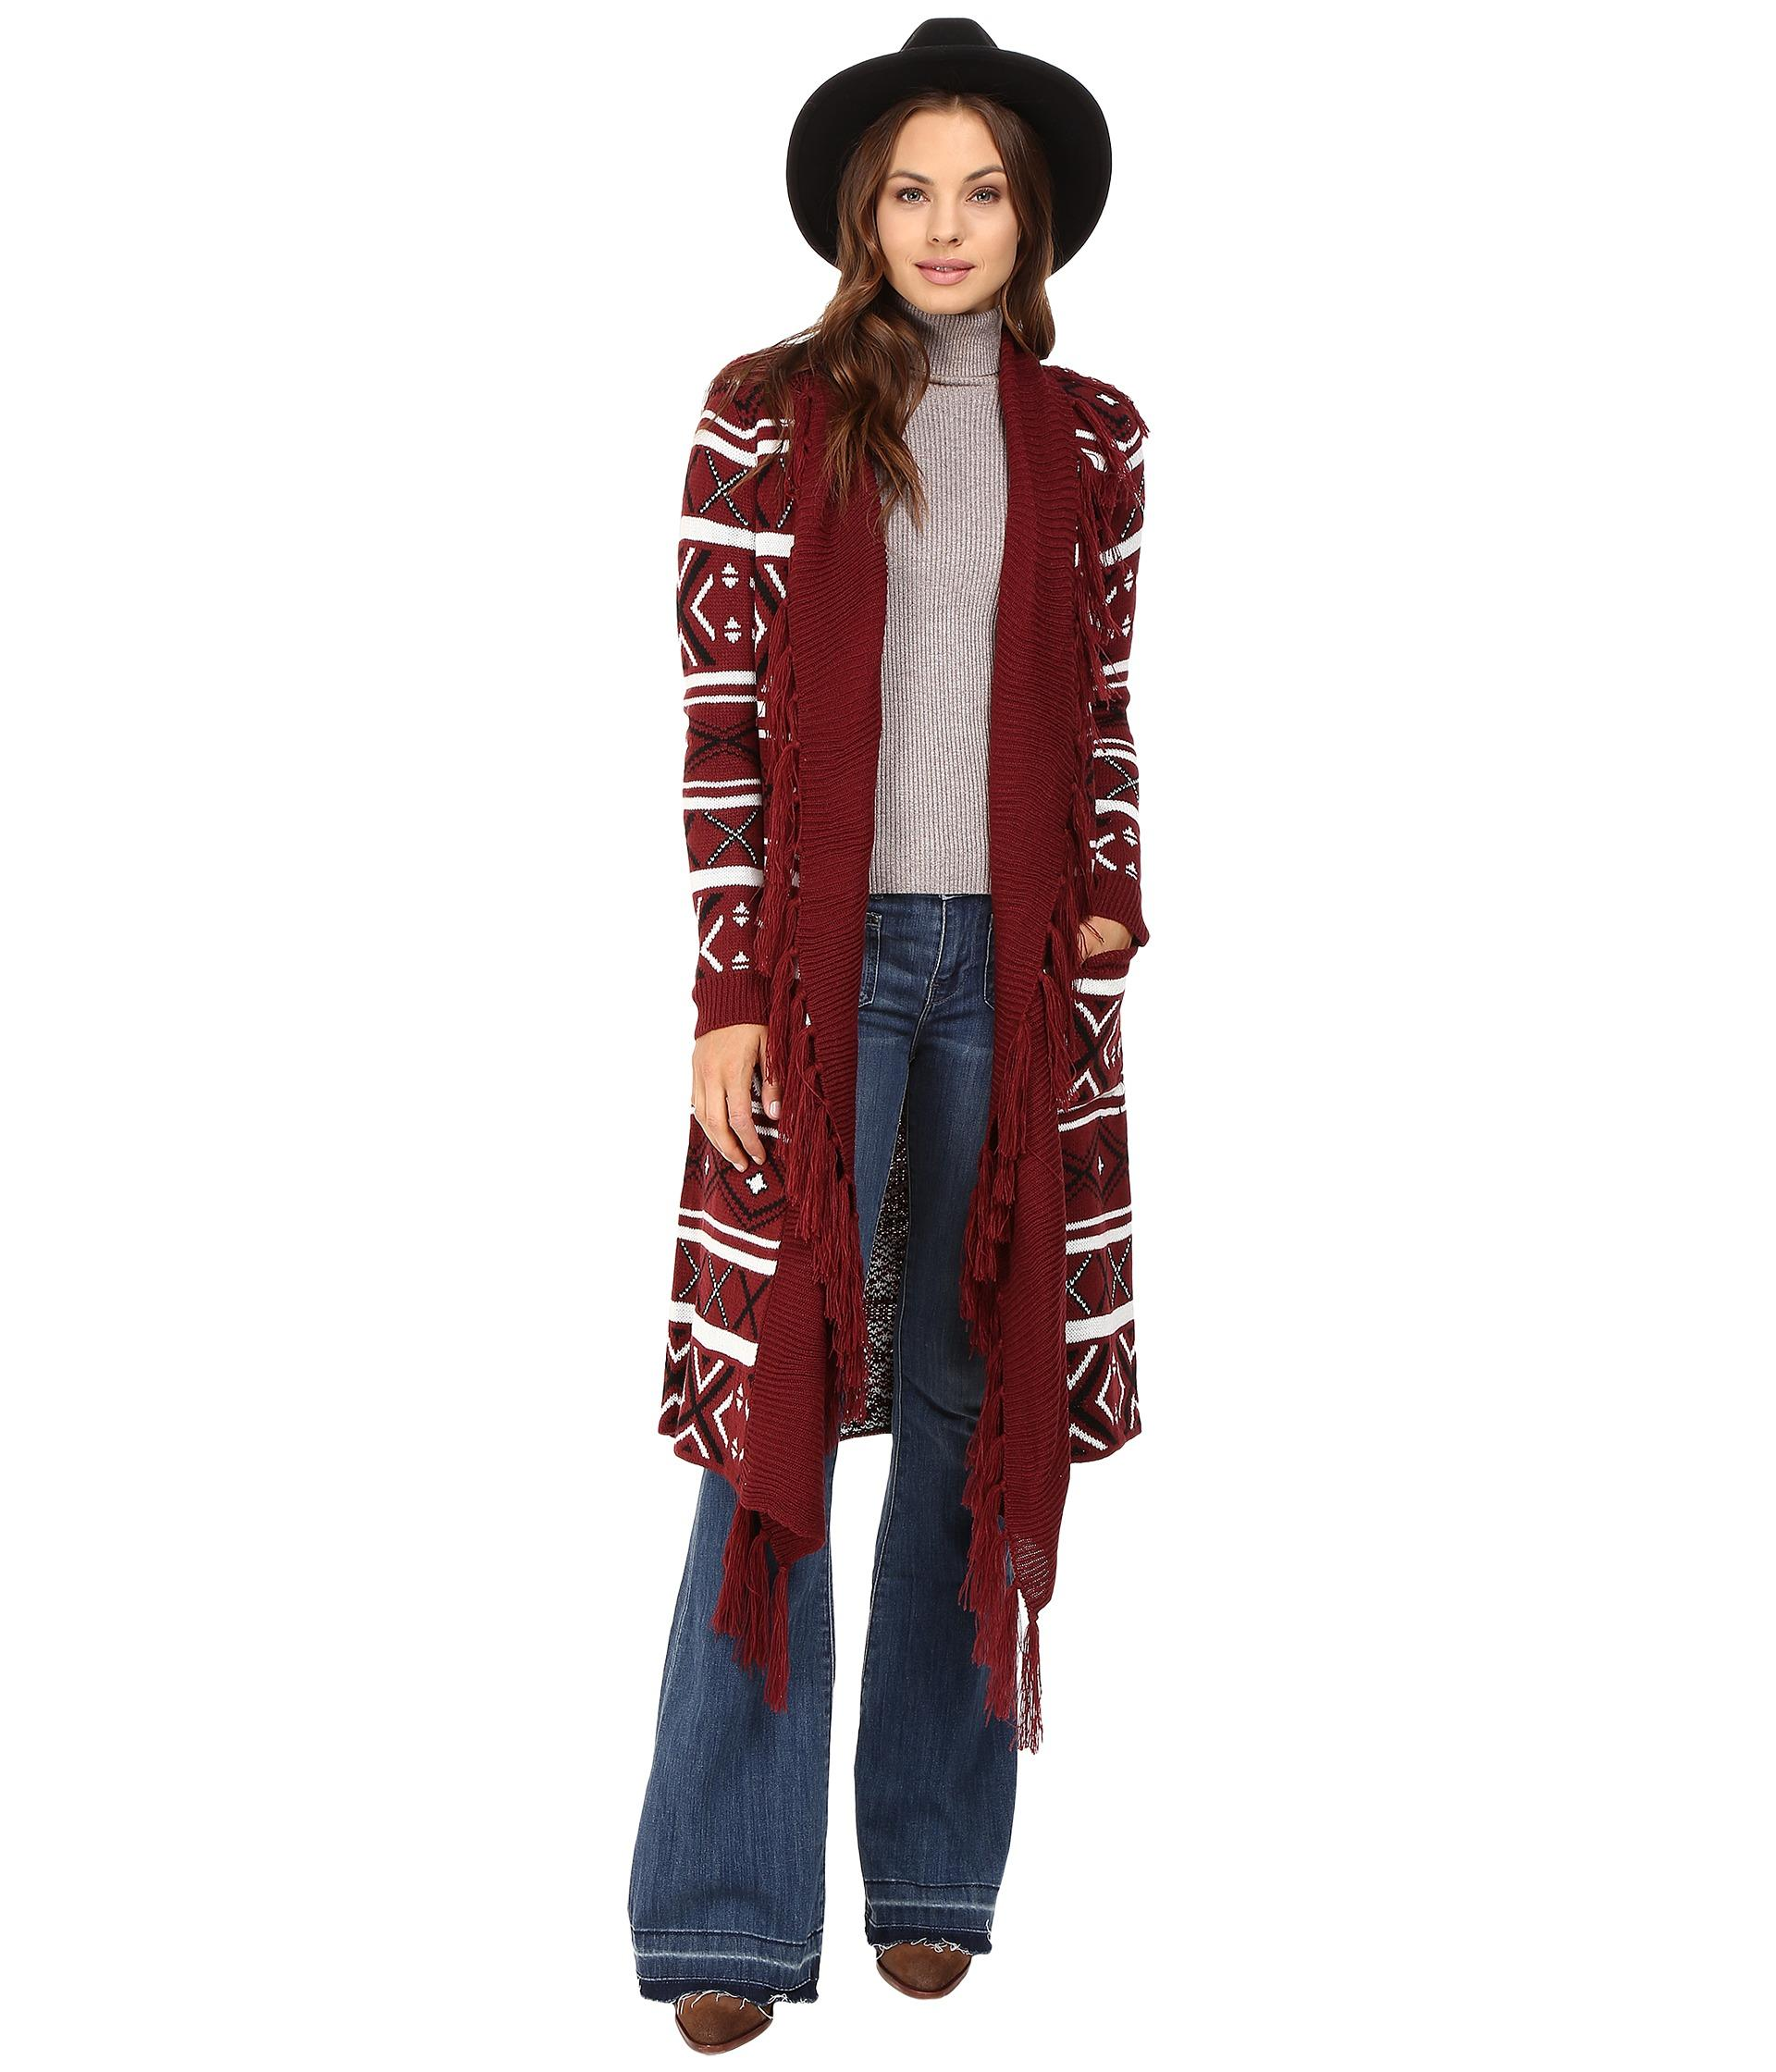 Jack bb dakota Maribeth Intarsia Maxi Cardigan W/ Fringe in Red ...